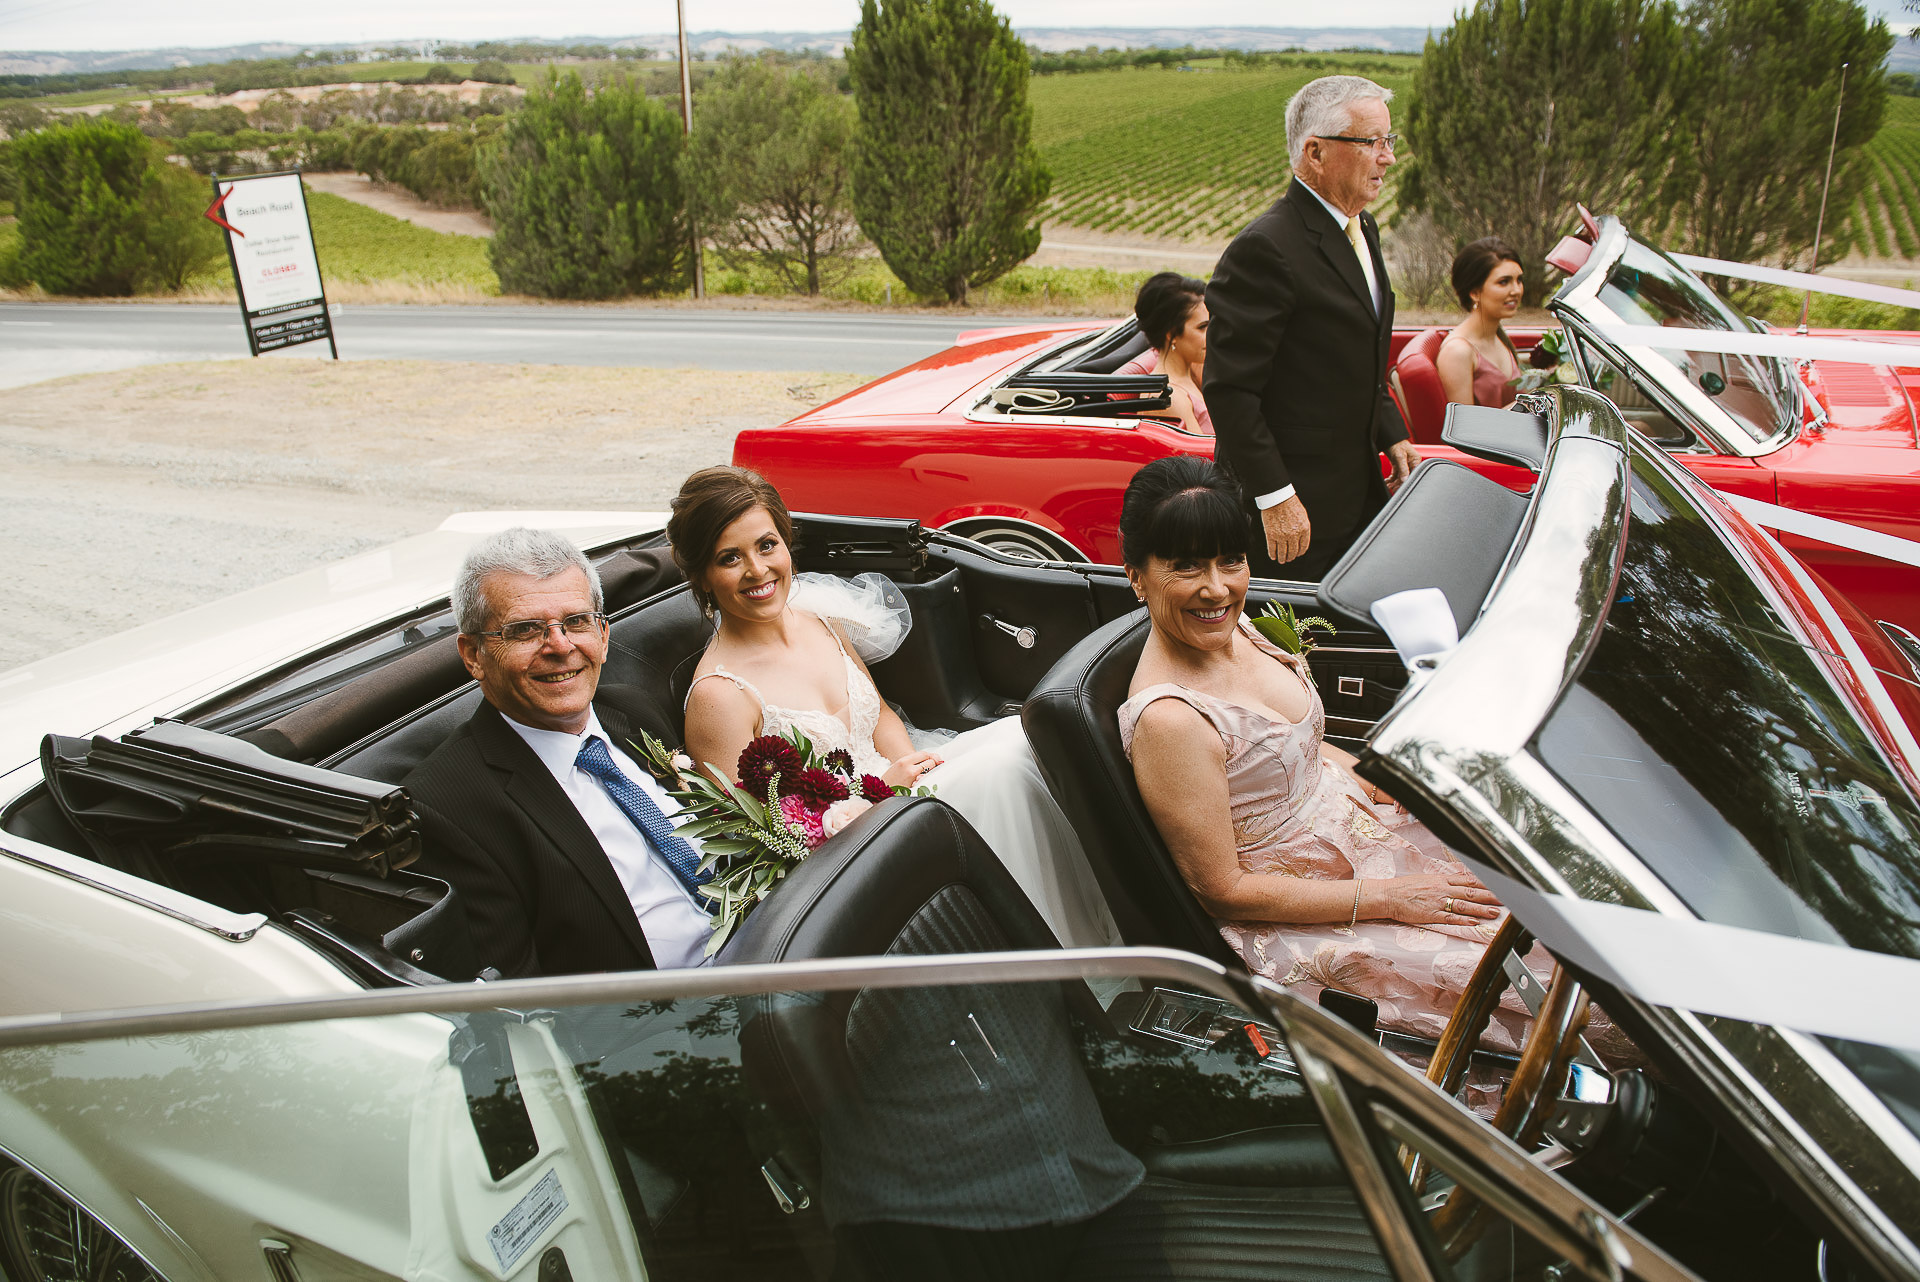 bride and parents in wedding car before ceremony